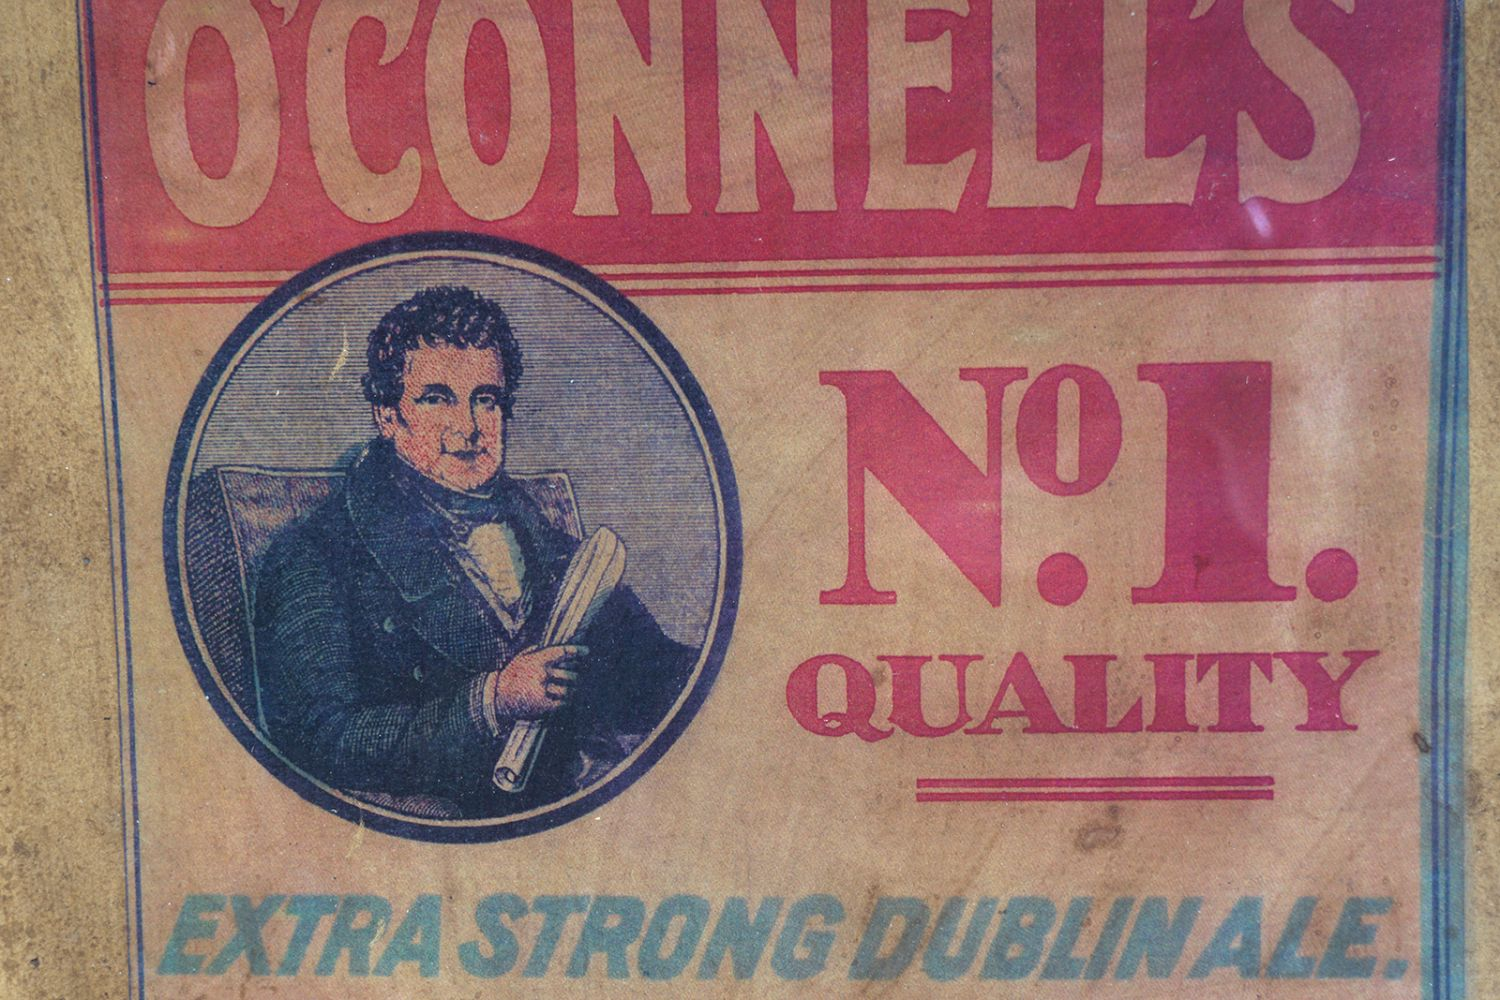 O'CONNELL'S NO.1 QUALITY ALE VINTAGE POSTER - Image 3 of 4